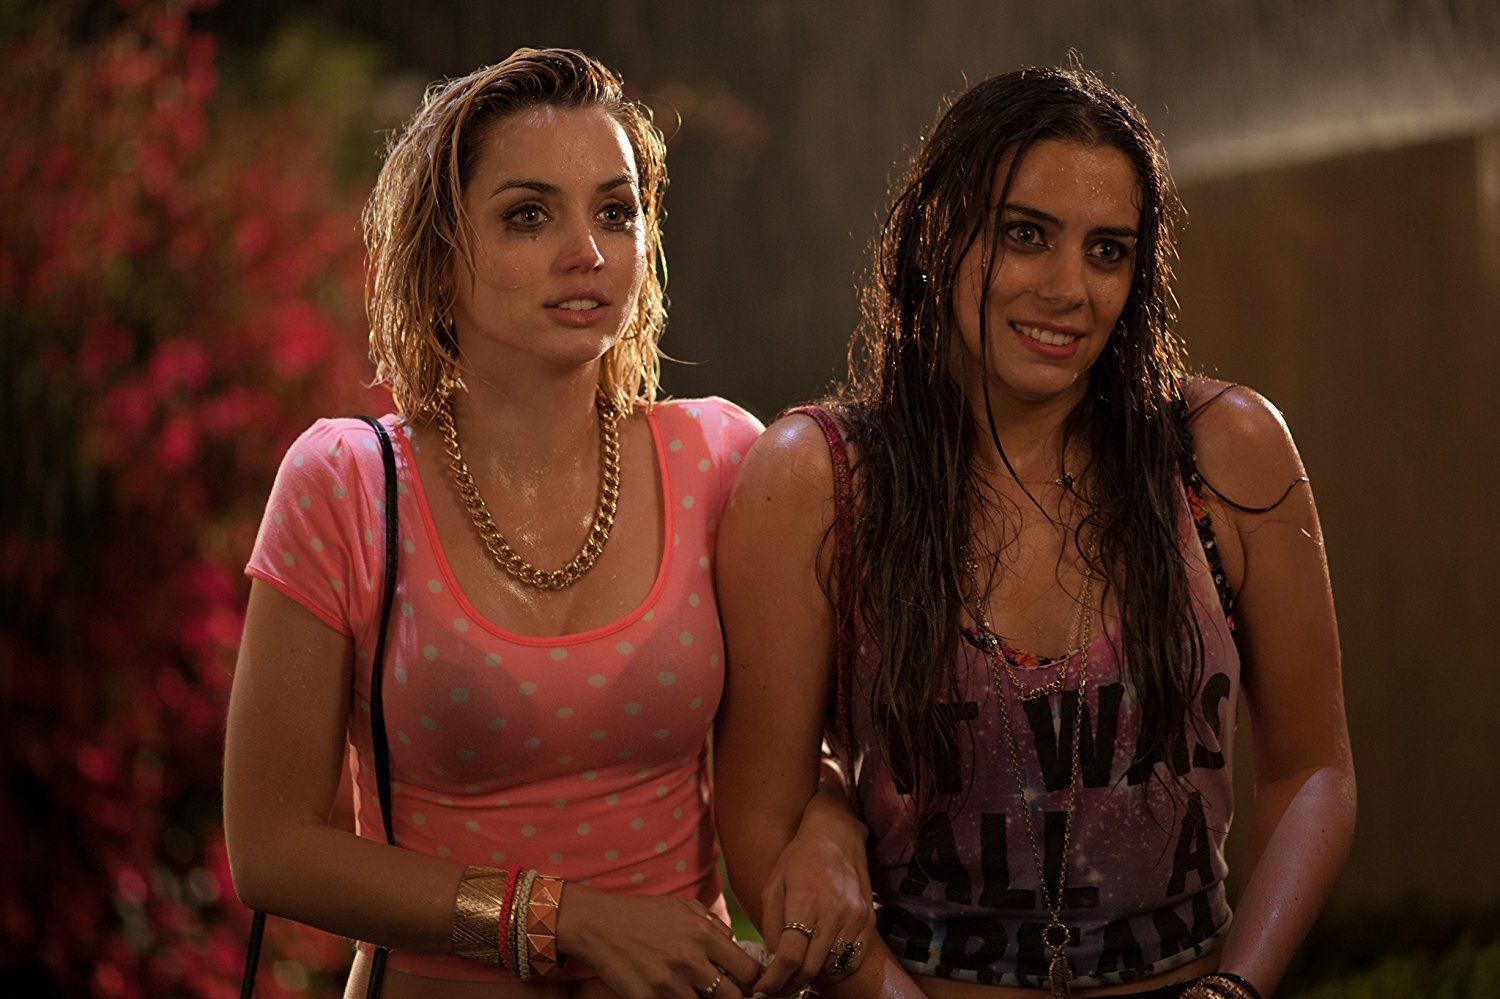 Ana De Armas And Lorenza Izzo In Knock Knock 2015 Knock Knock Knock Movie Newest Horror Movies